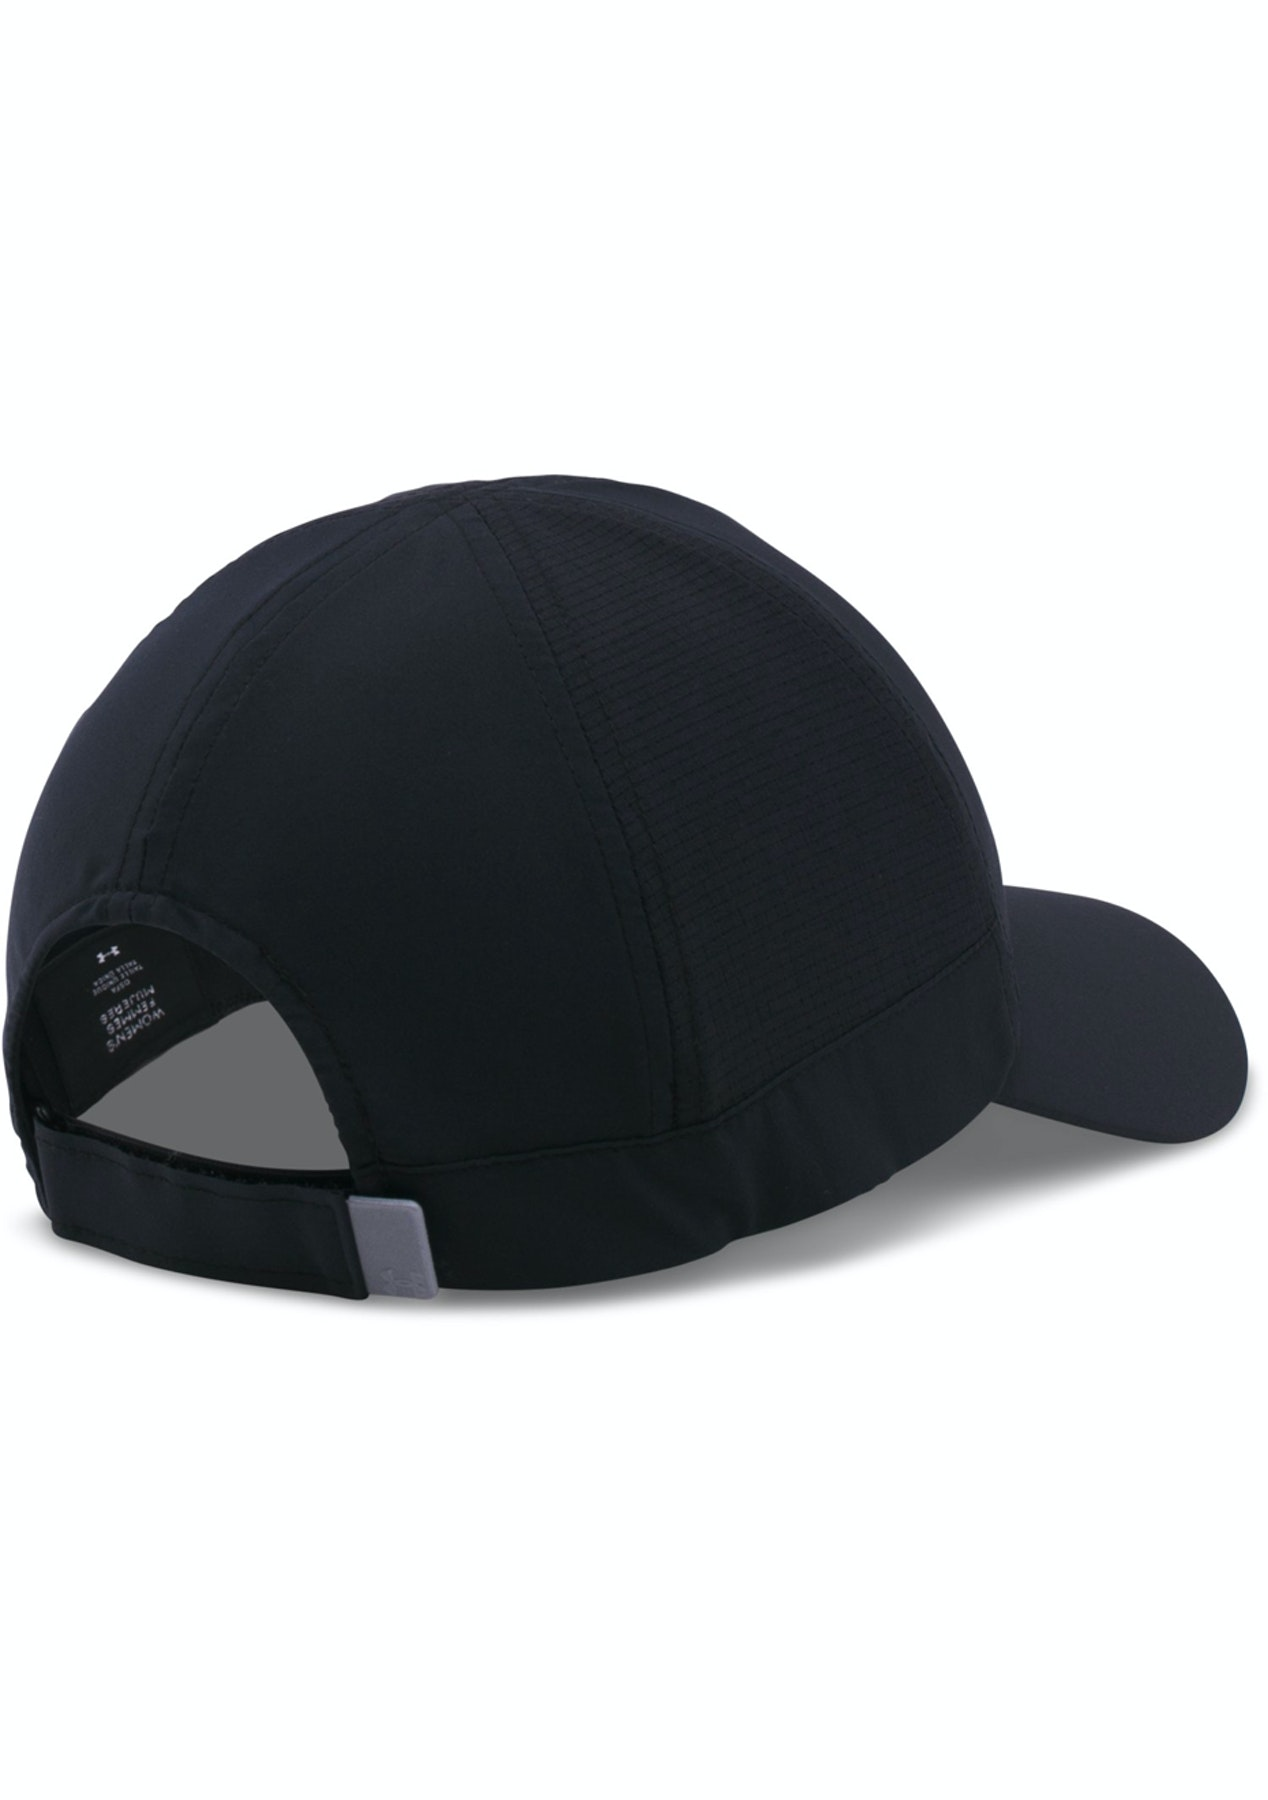 Under Armour Womens Fly Fast Cap Black Slvr - Under Armour from  8.95 -  Onceit 41a8aec64a42